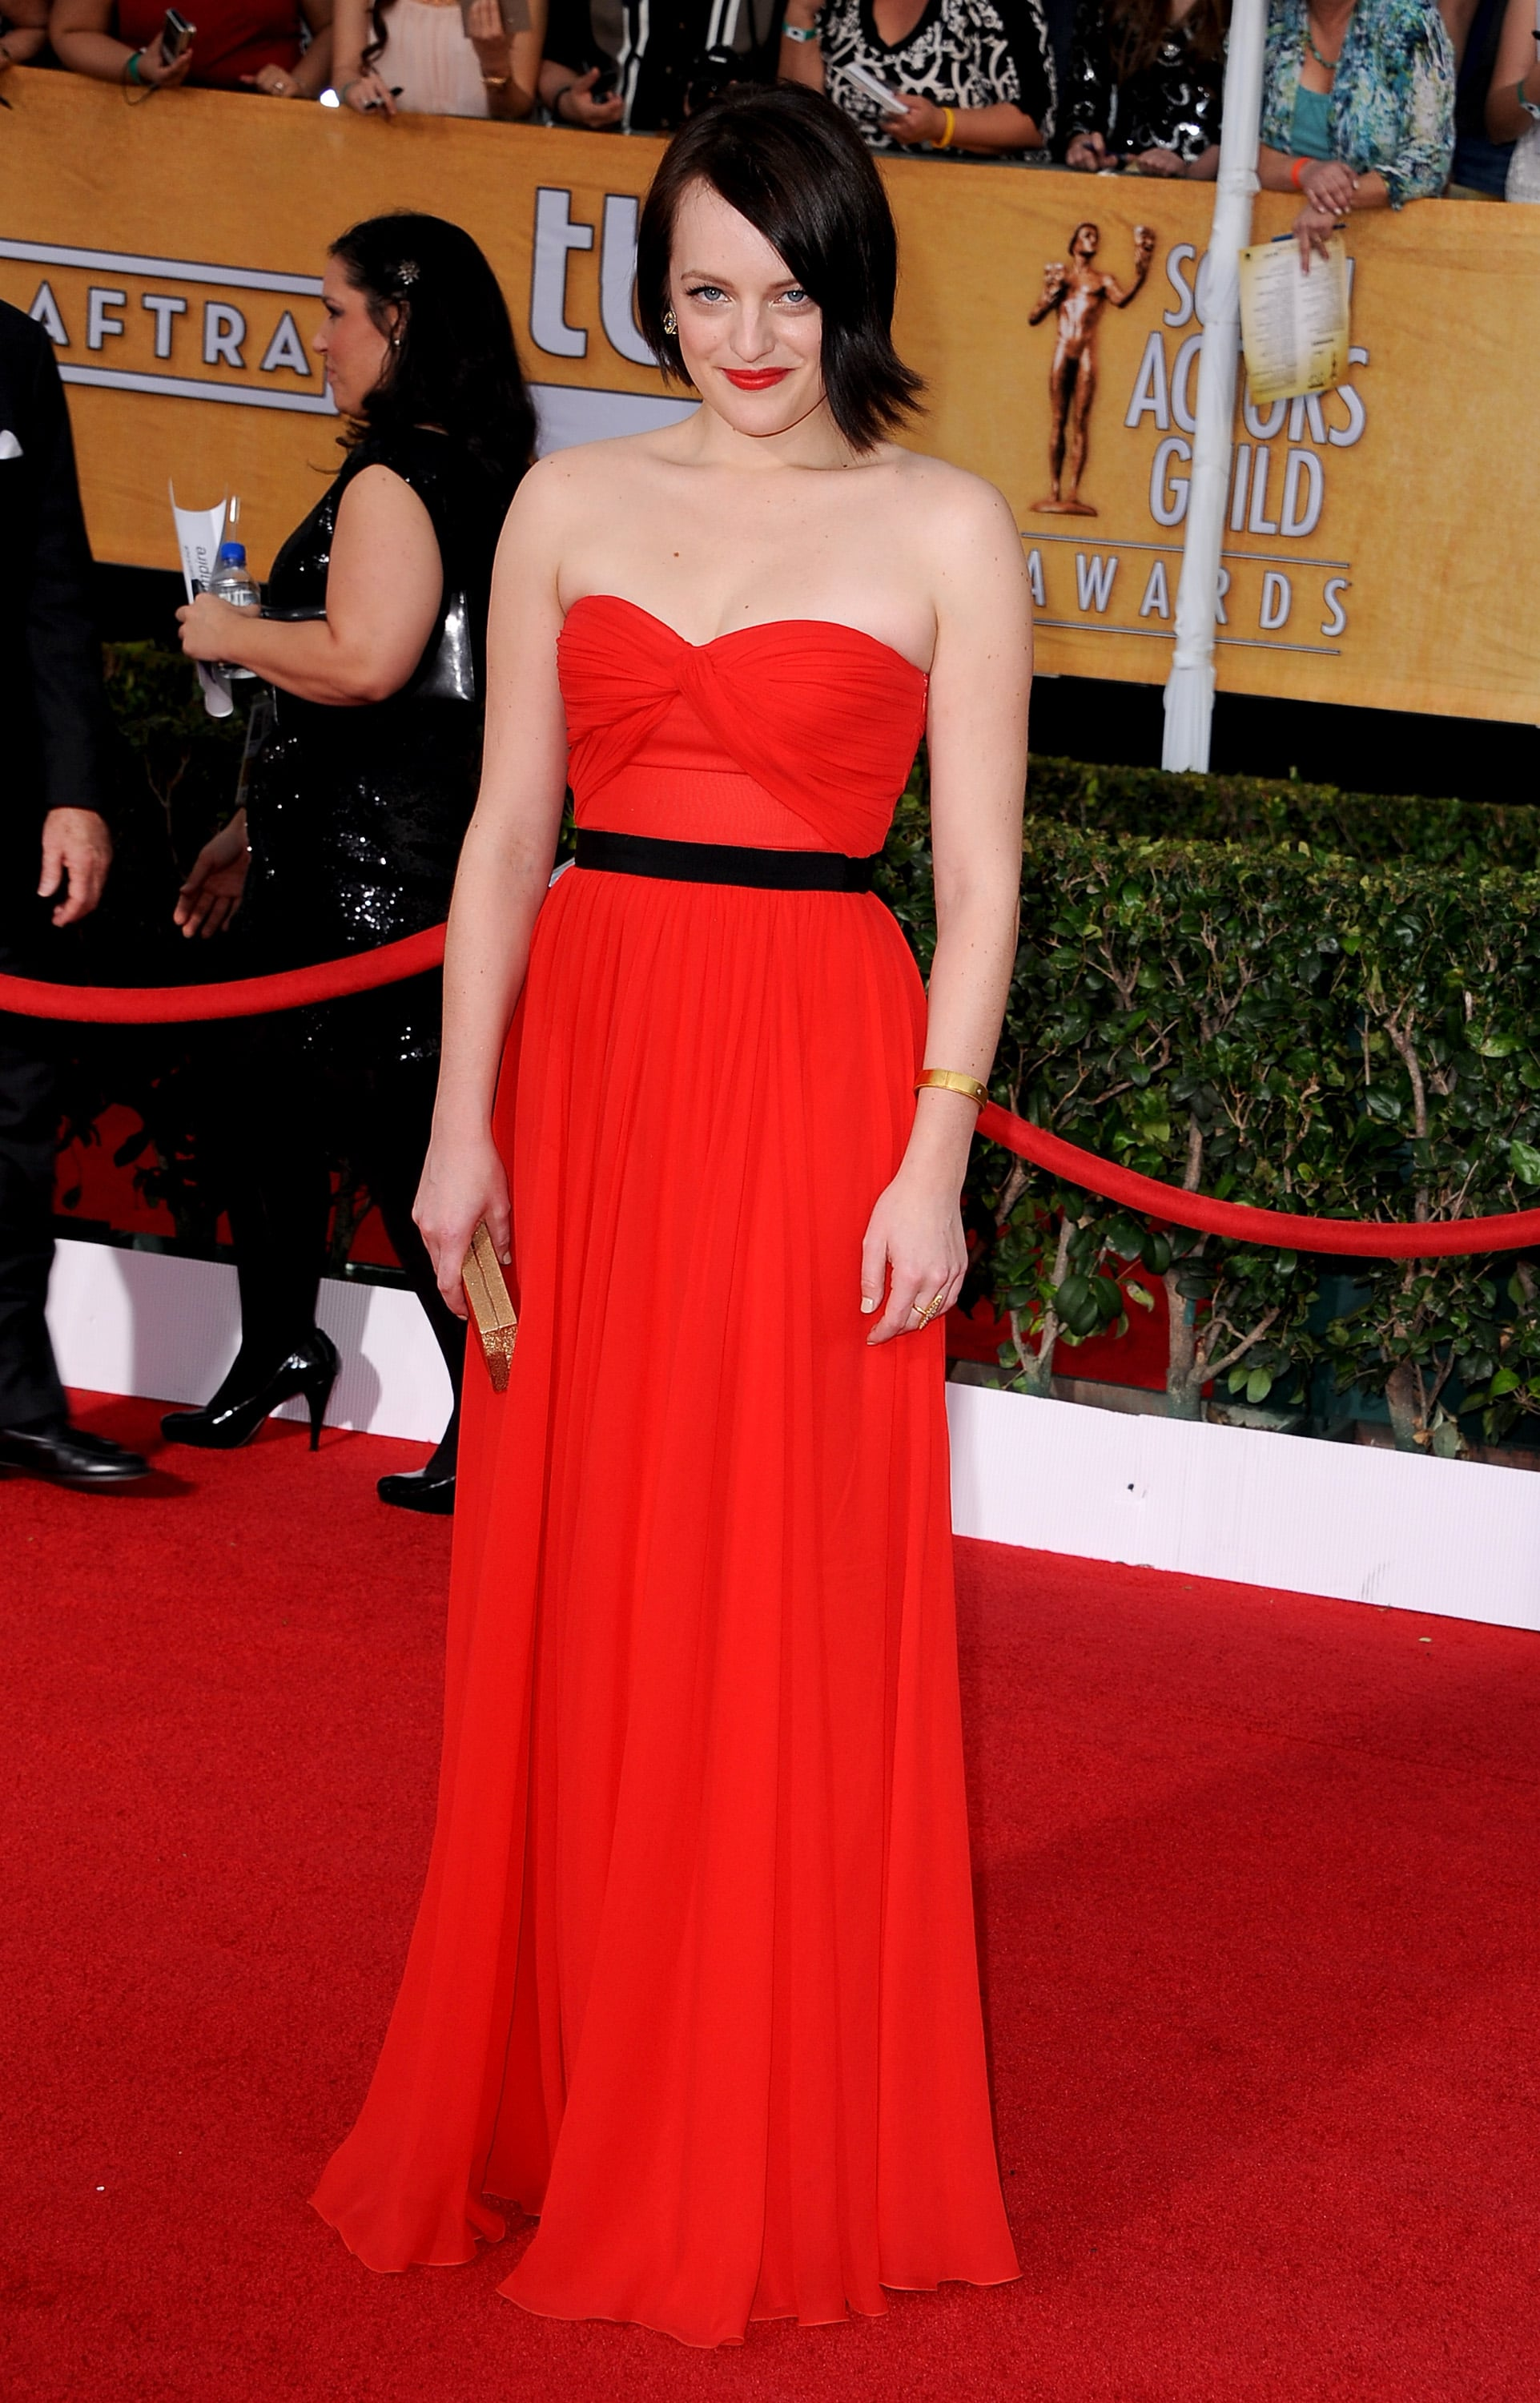 Elisabeth Moss matched her lipstick to her bright red gown.